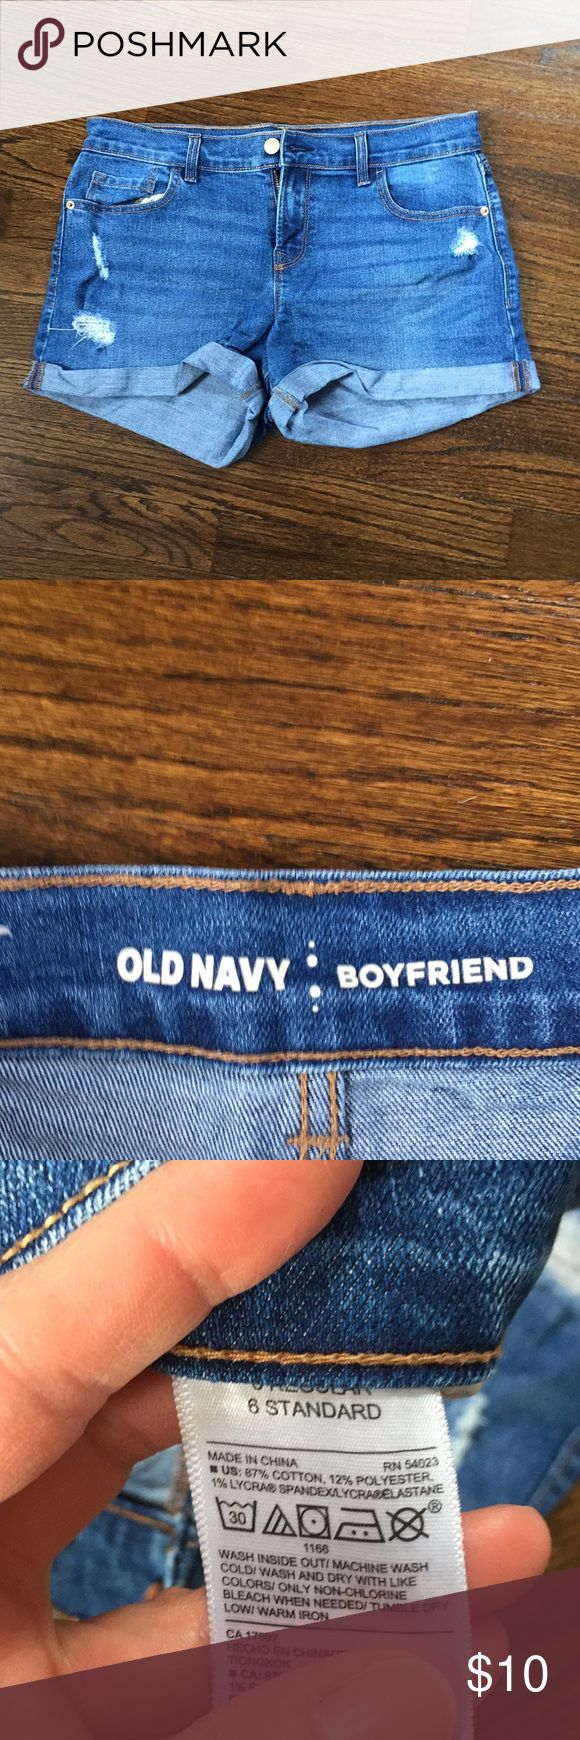 Old navy shorts Boyfriend old navy shorts Shorts Jean Shorts